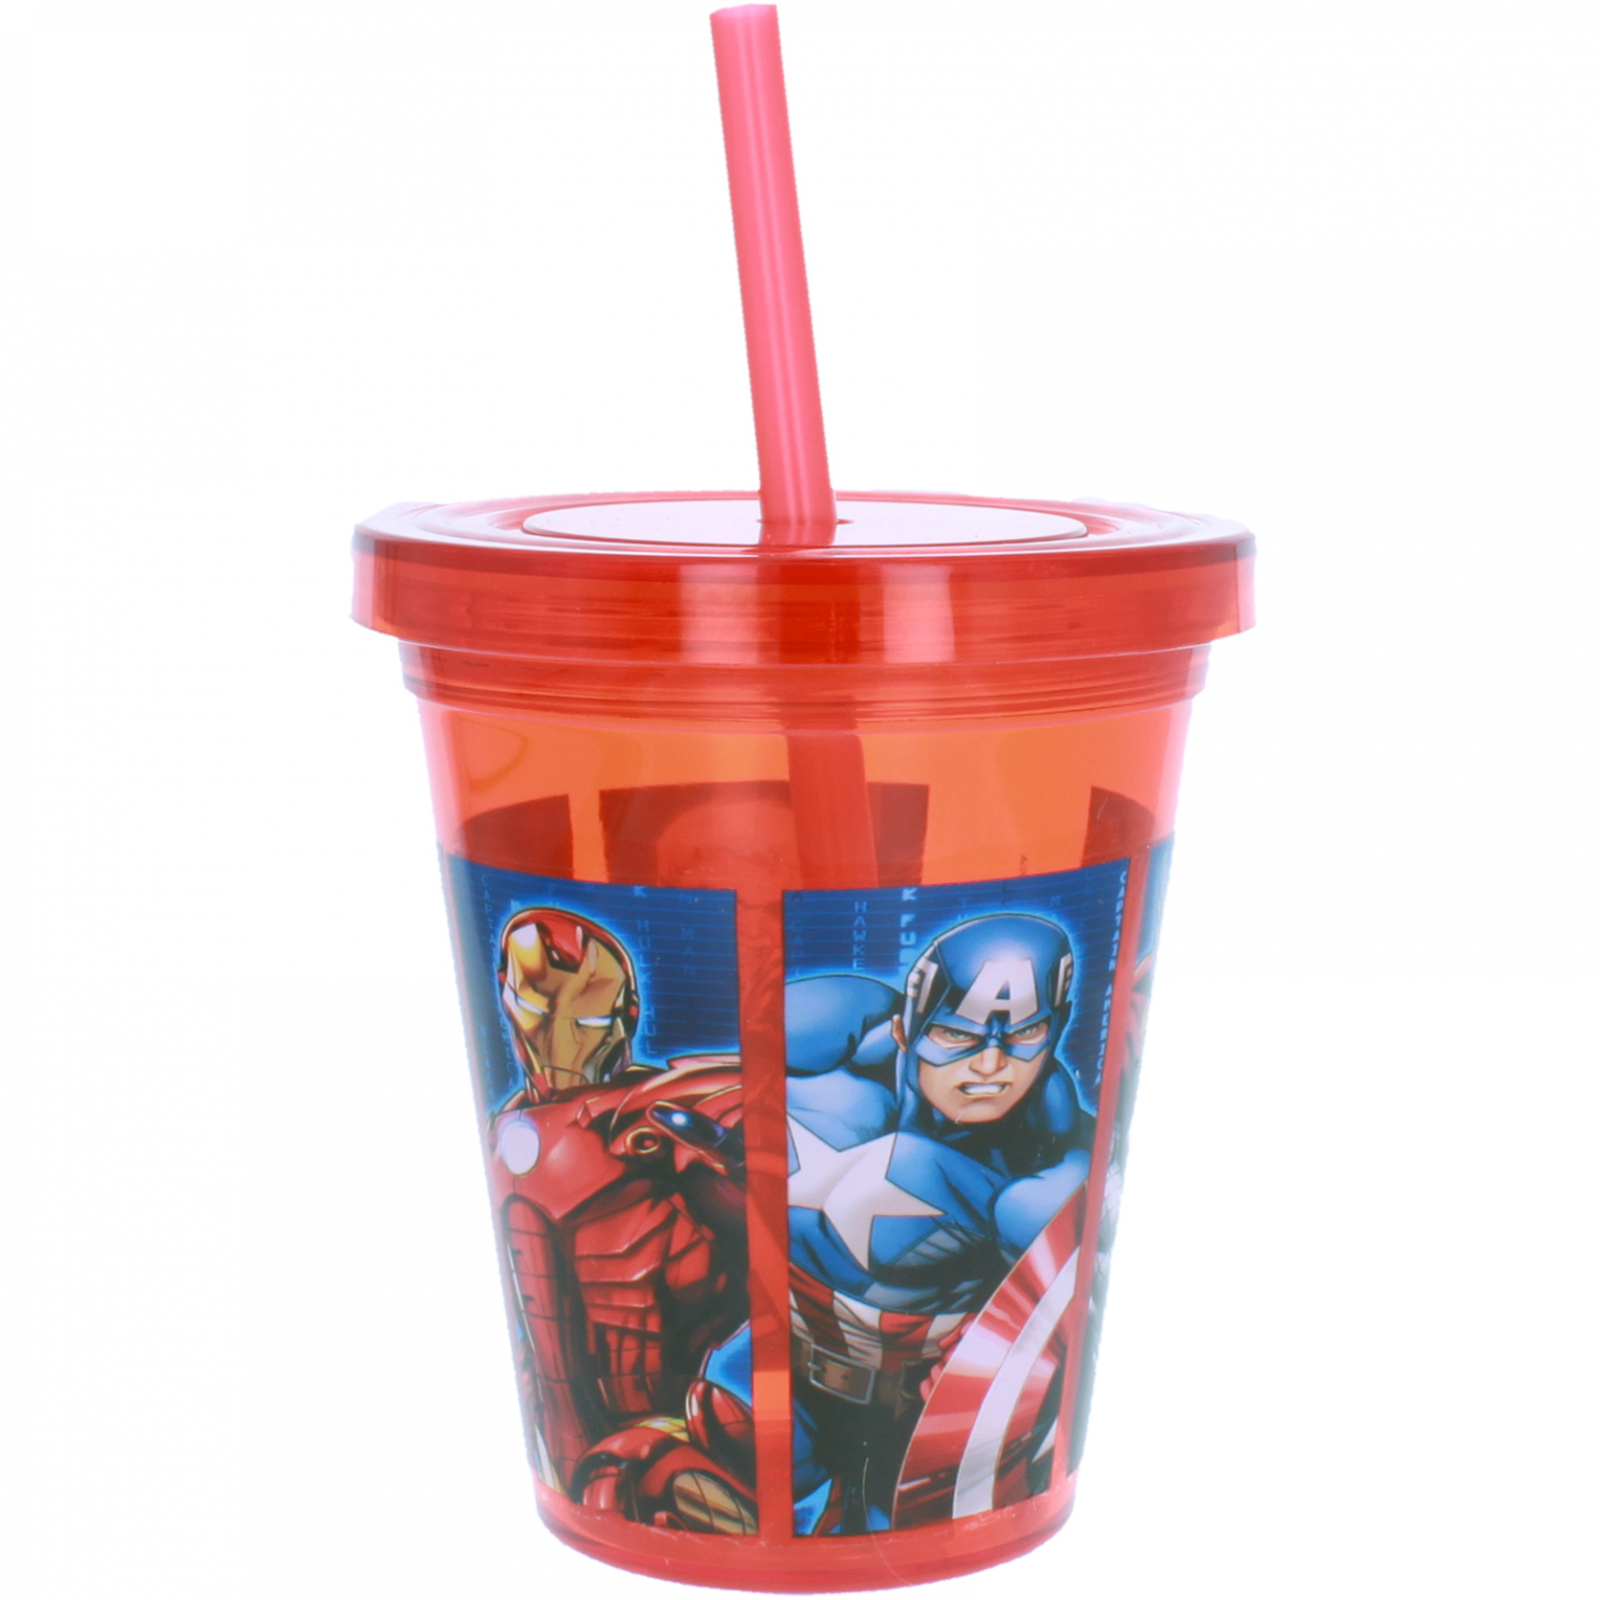 Marvel Avengers Assemble 10z Kids Cup Drink Tumbler with Straw - Red